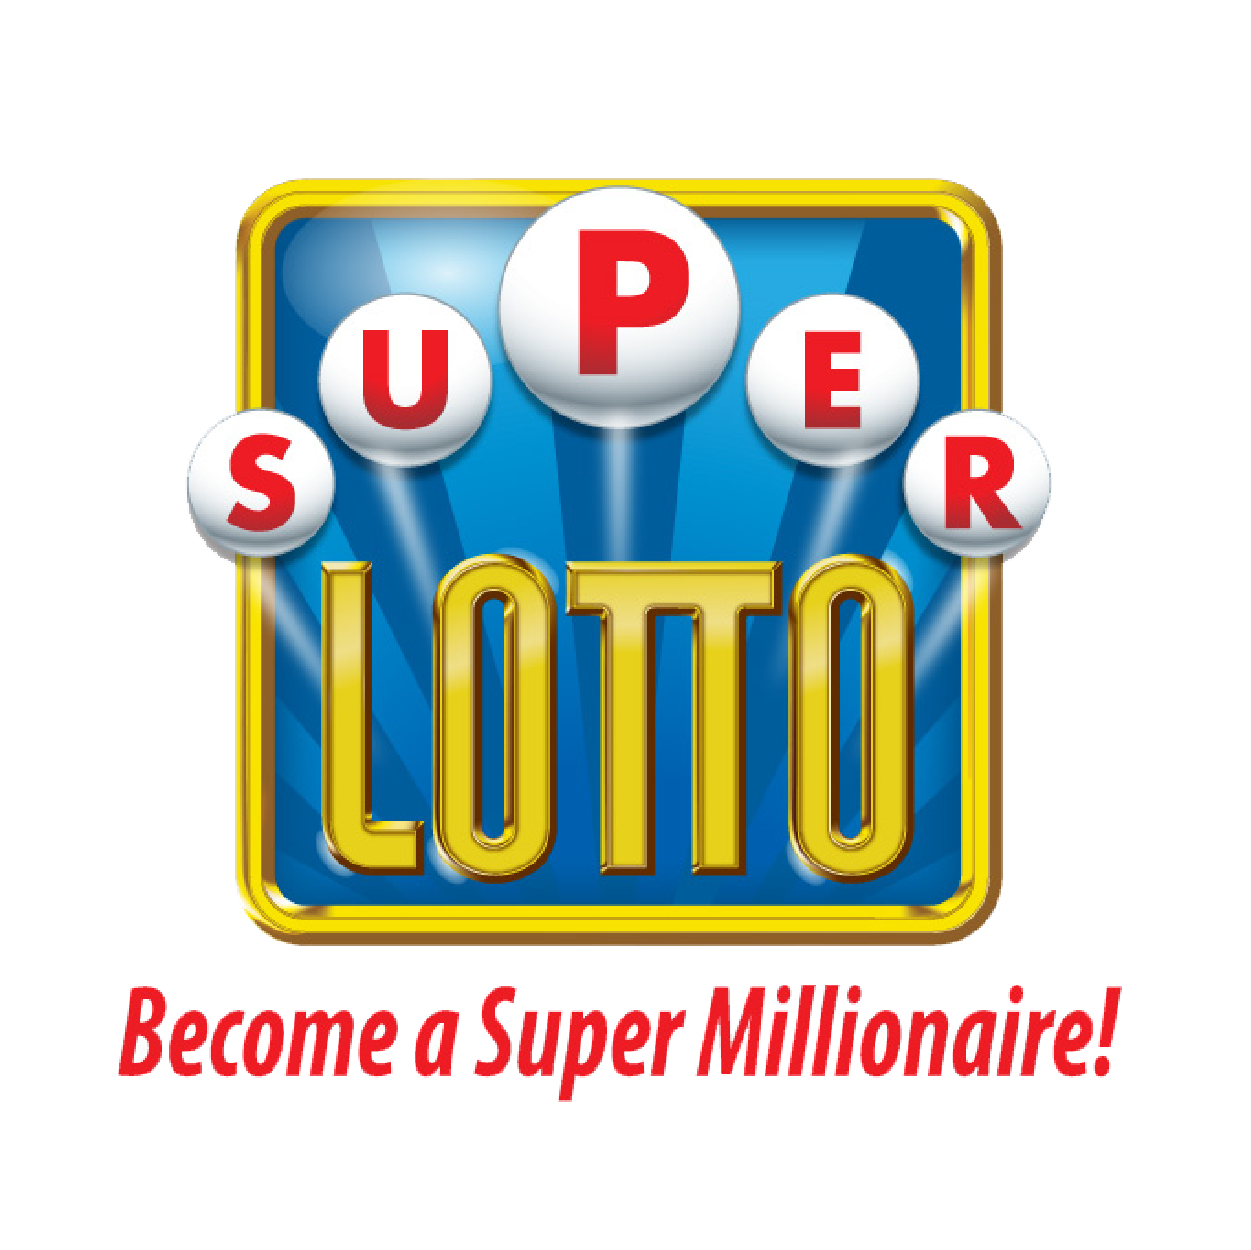 Super Lotto